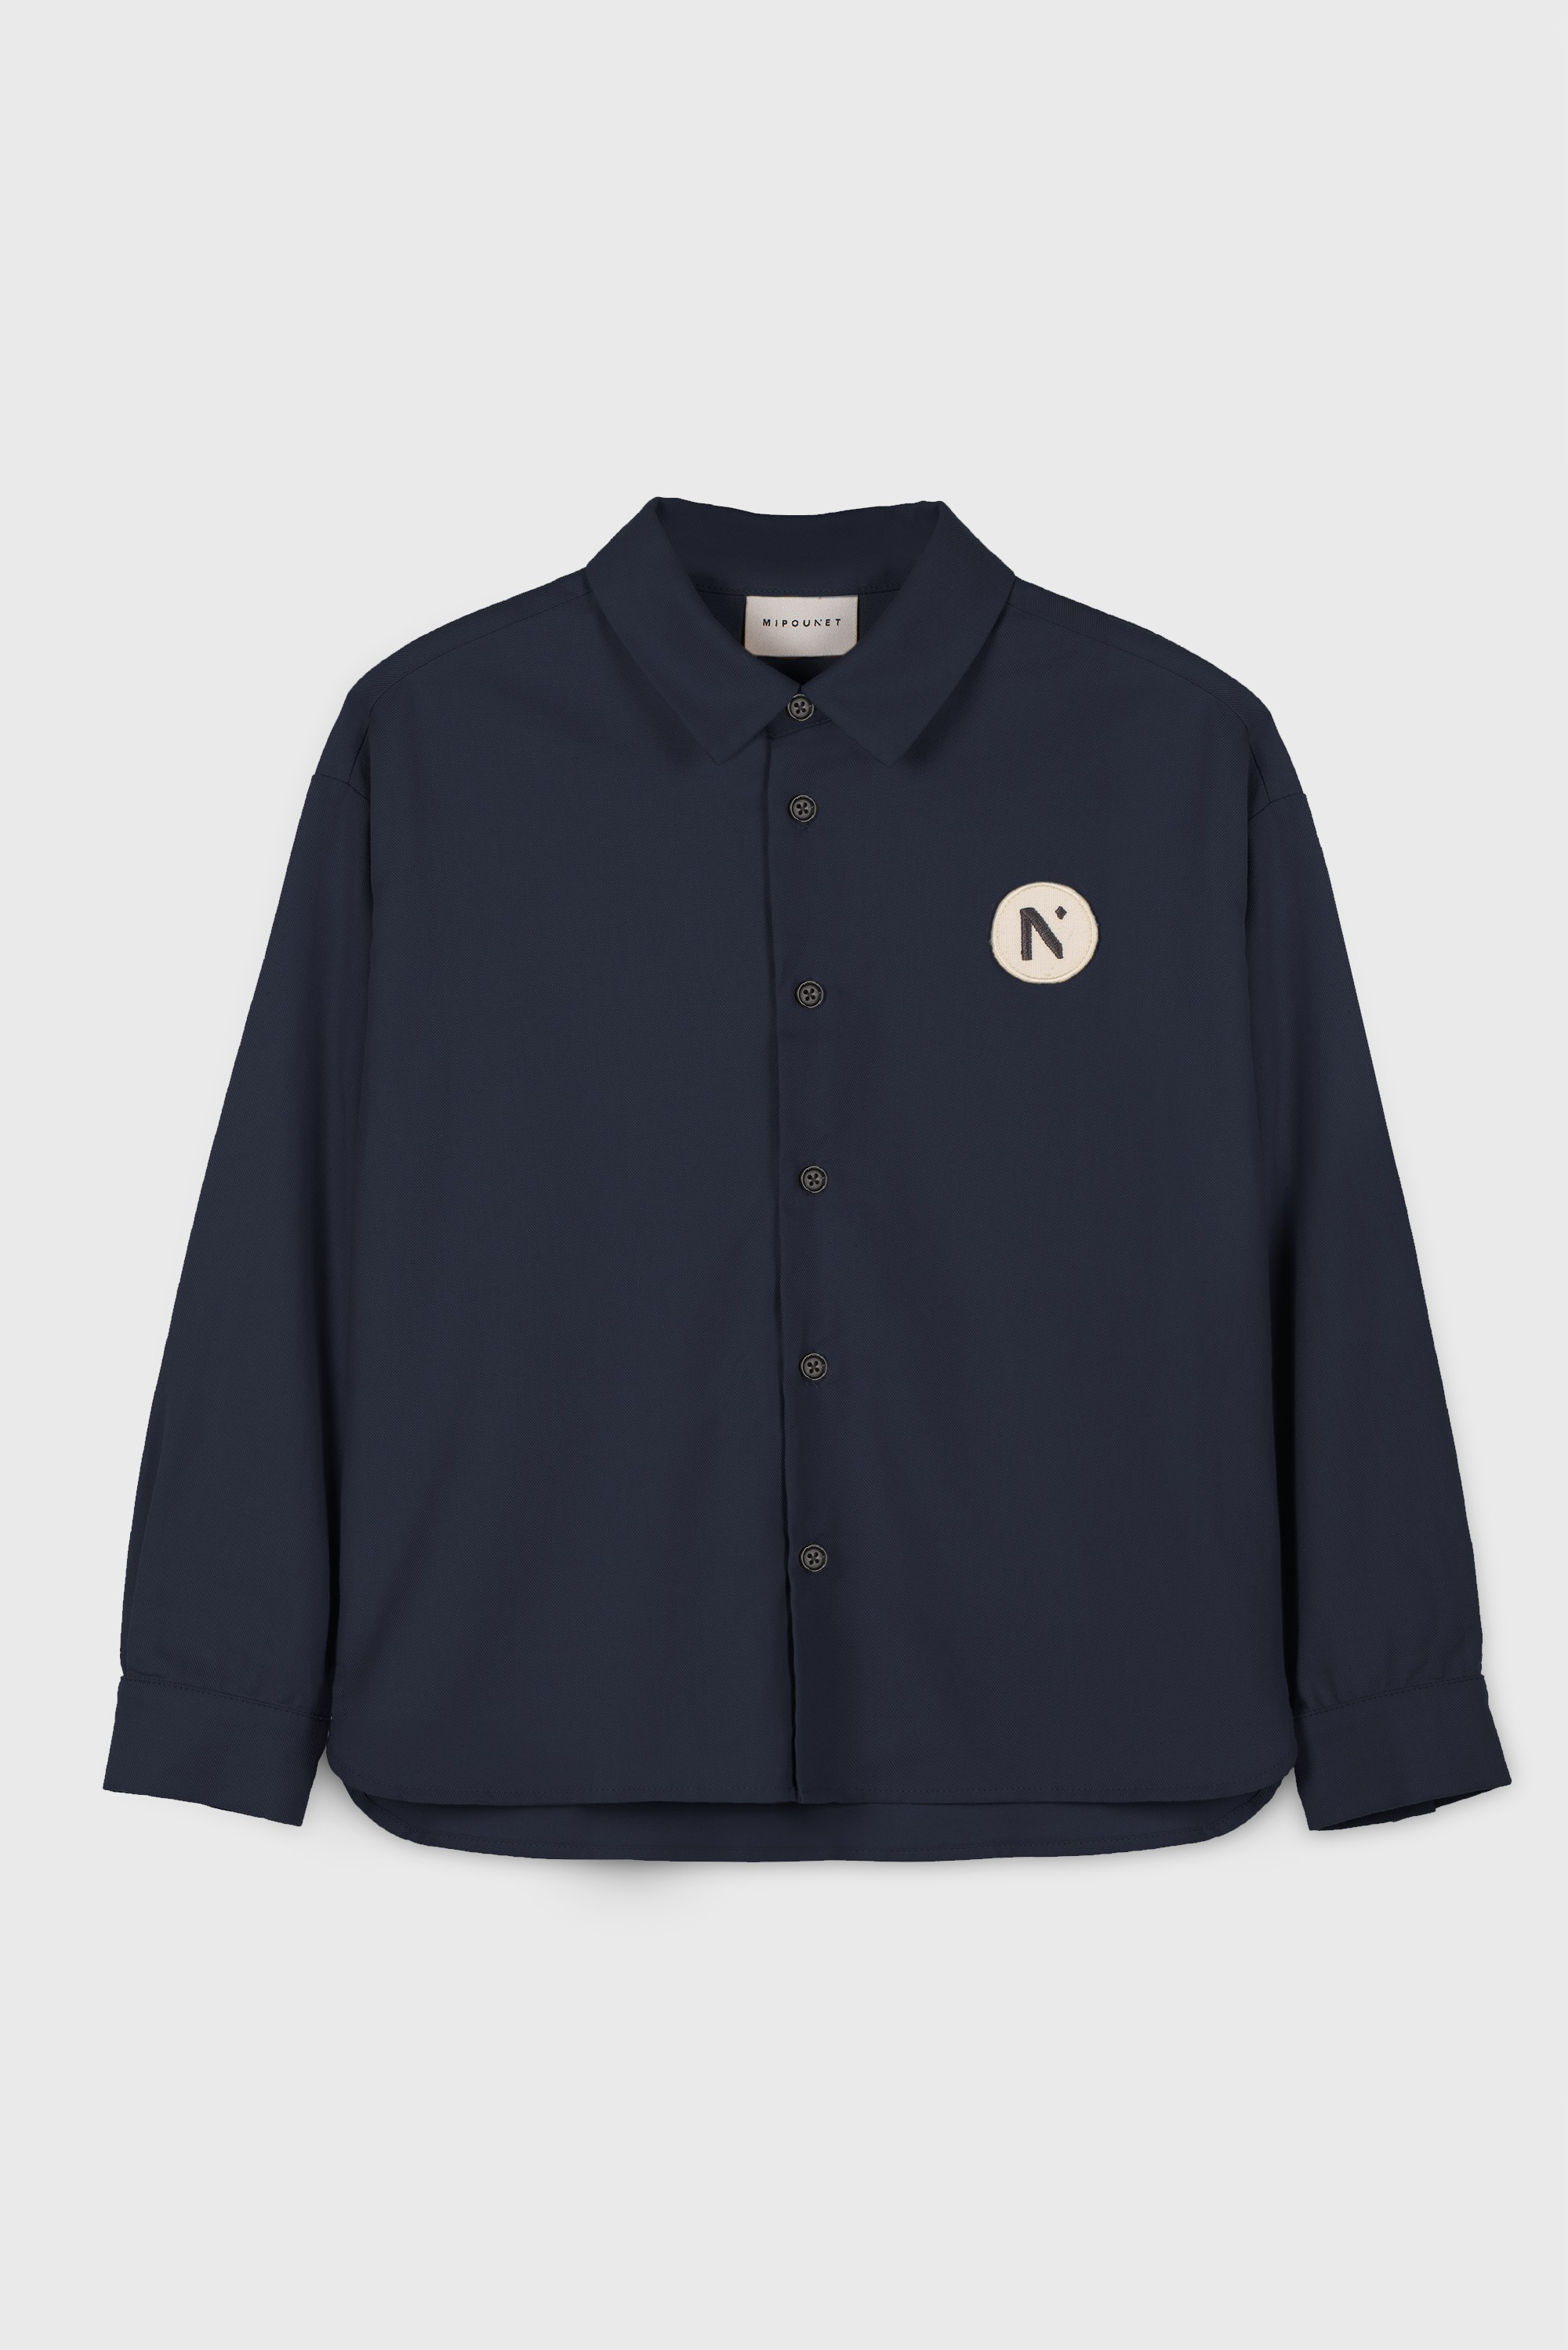 DARK BLUE COTTON VIYELLA SHIRT